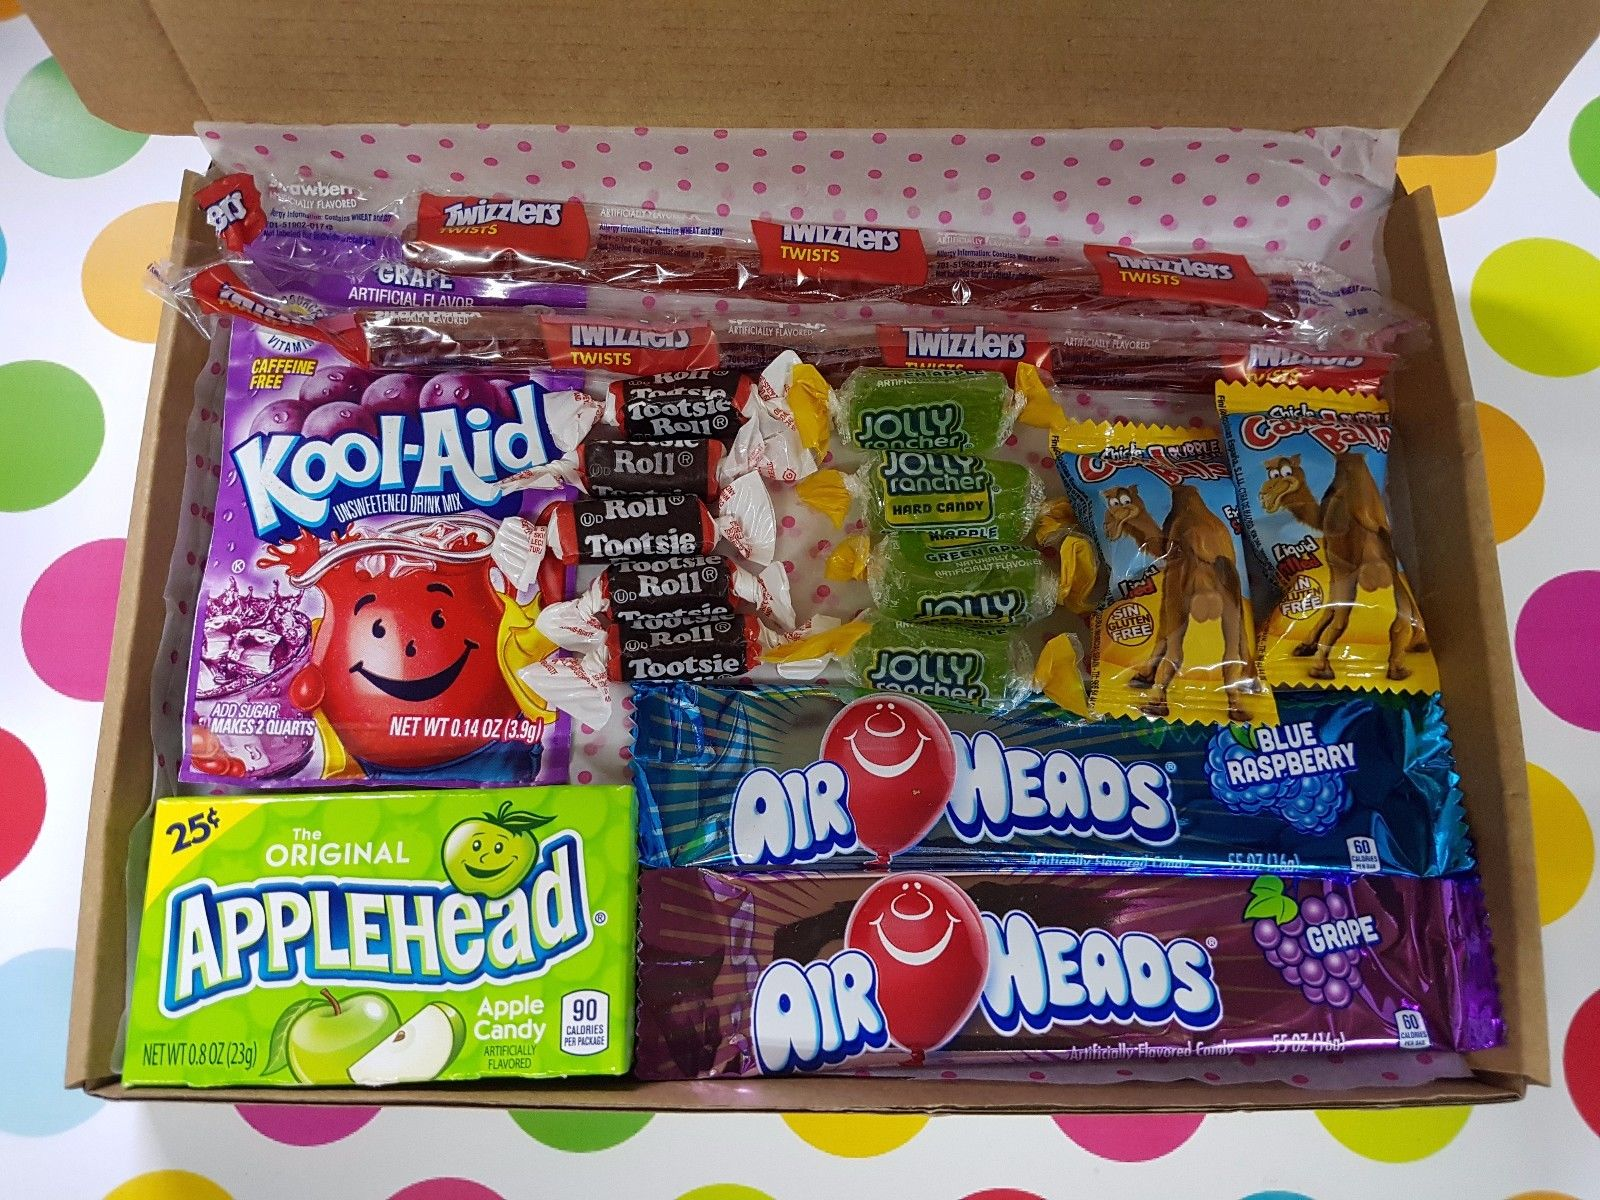 American Candy Gift Box 2